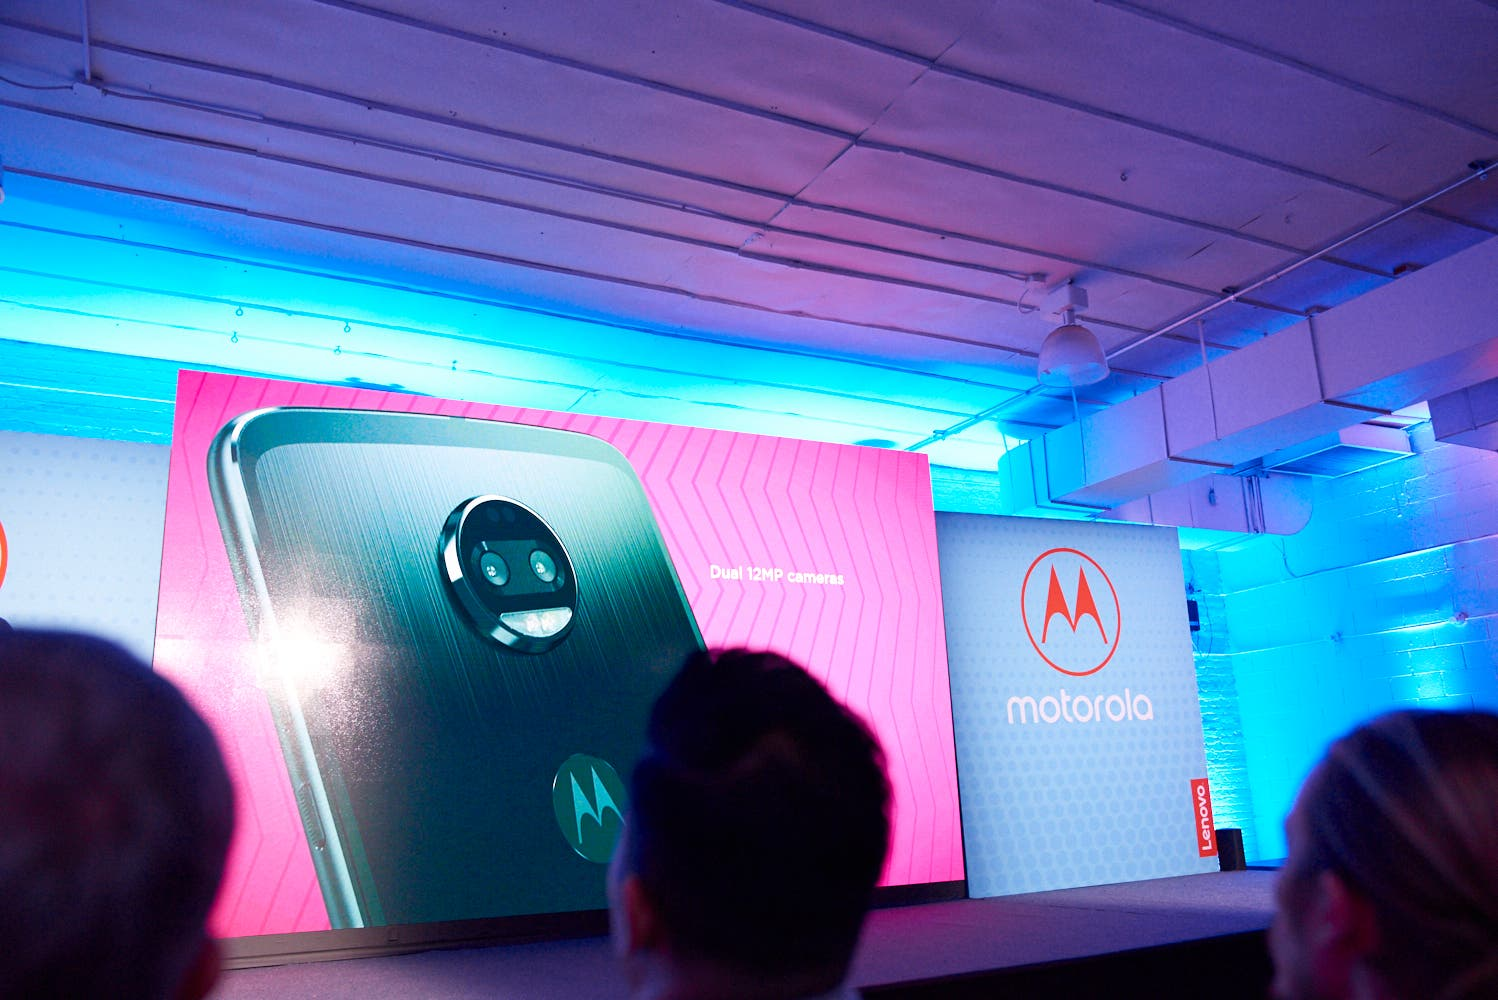 The New Motorola Moto Z Force Sports Dual Rear Cameras, One Black and White